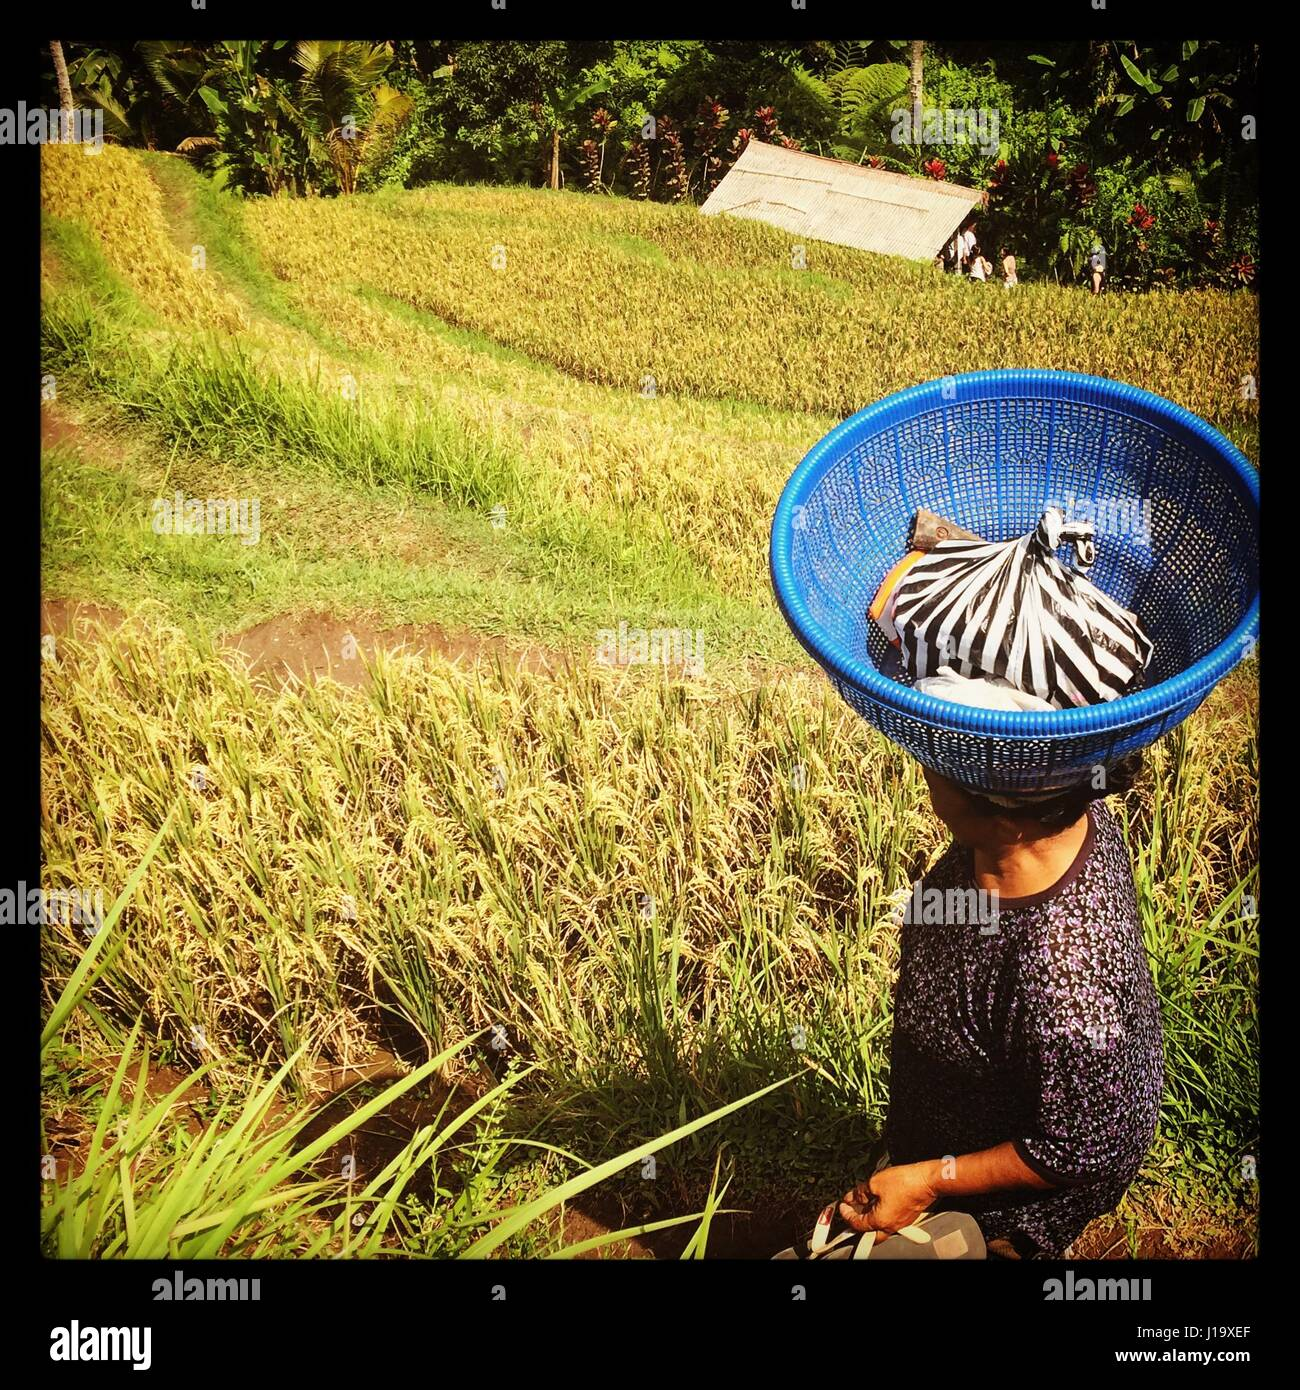 Daily indonesia . While experiencing the rice terraces as a tourist the locals still go about their daily tasks. - Stock Image